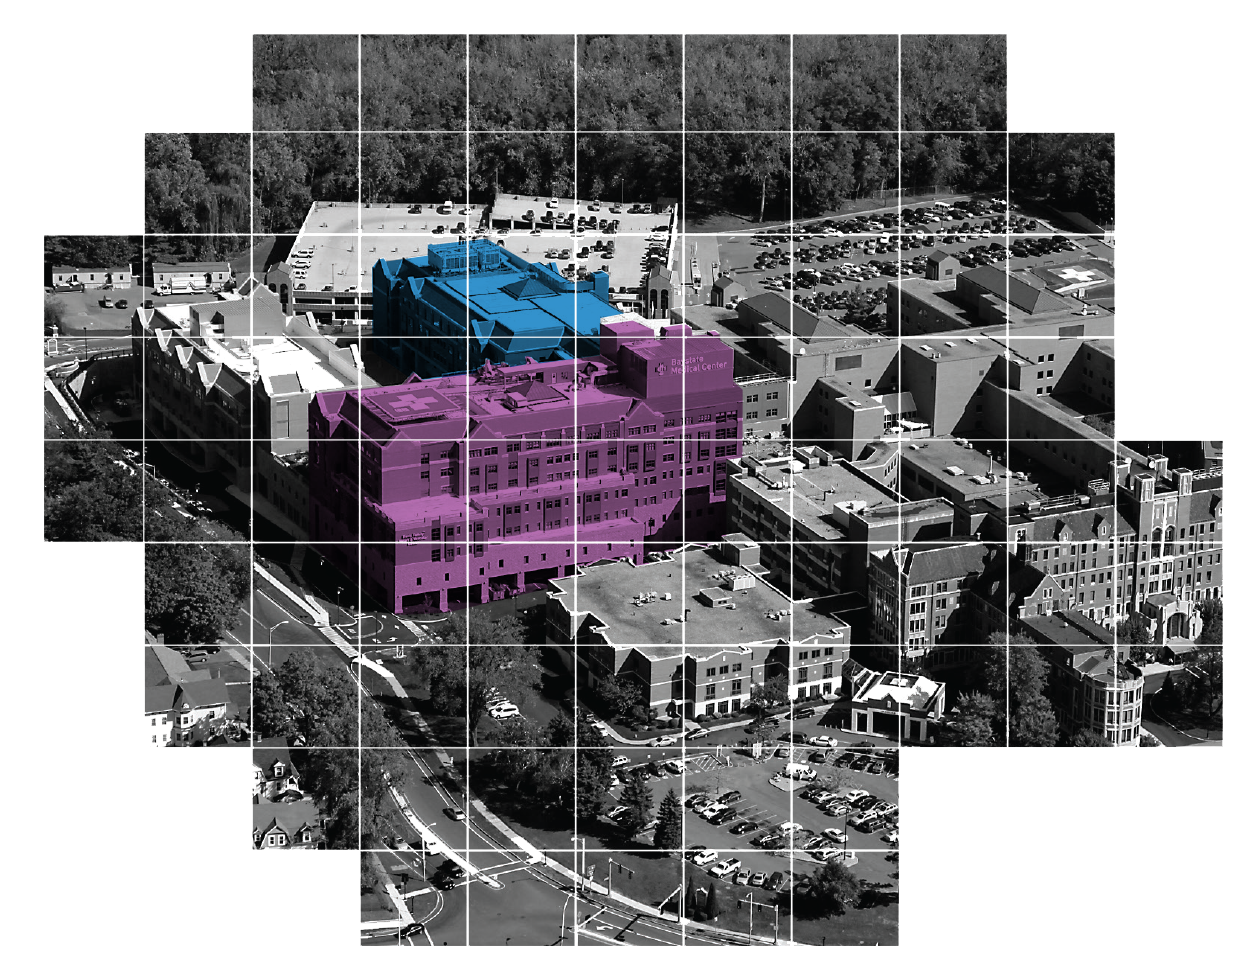 Baystate Medical Center highlighted to show where the evidence based design changes occurred